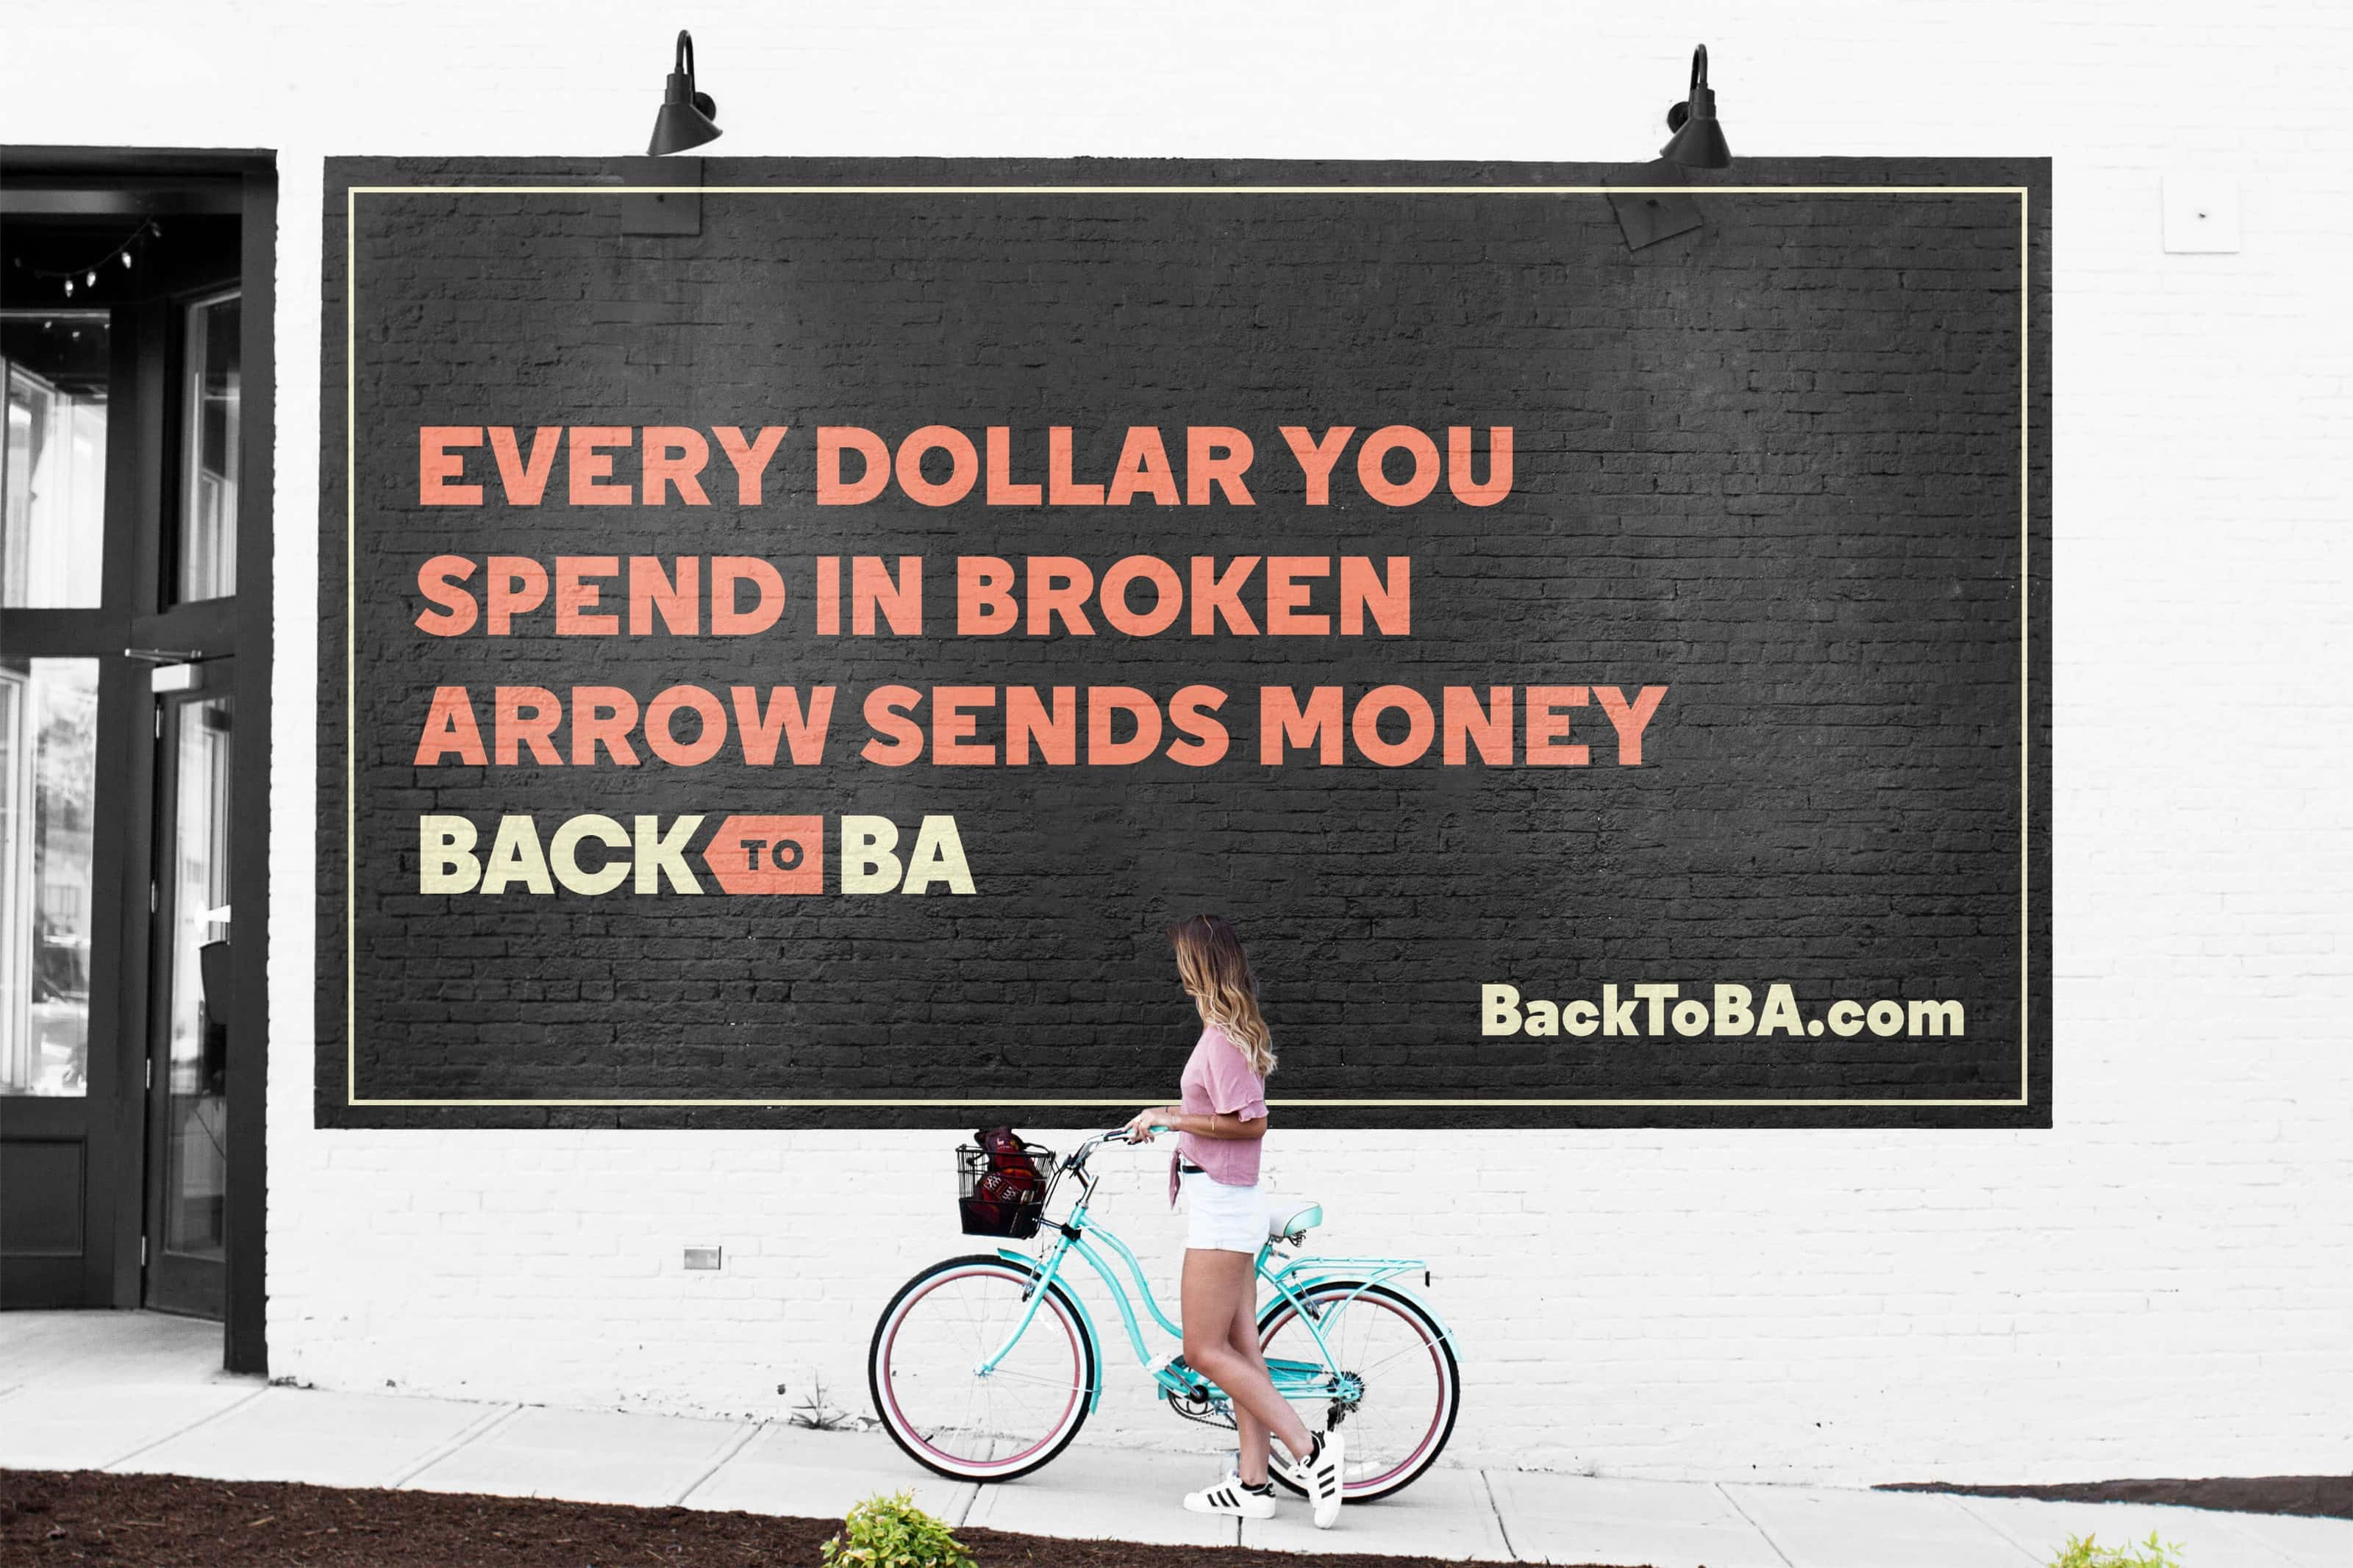 Wall Mural for Back to B.A.